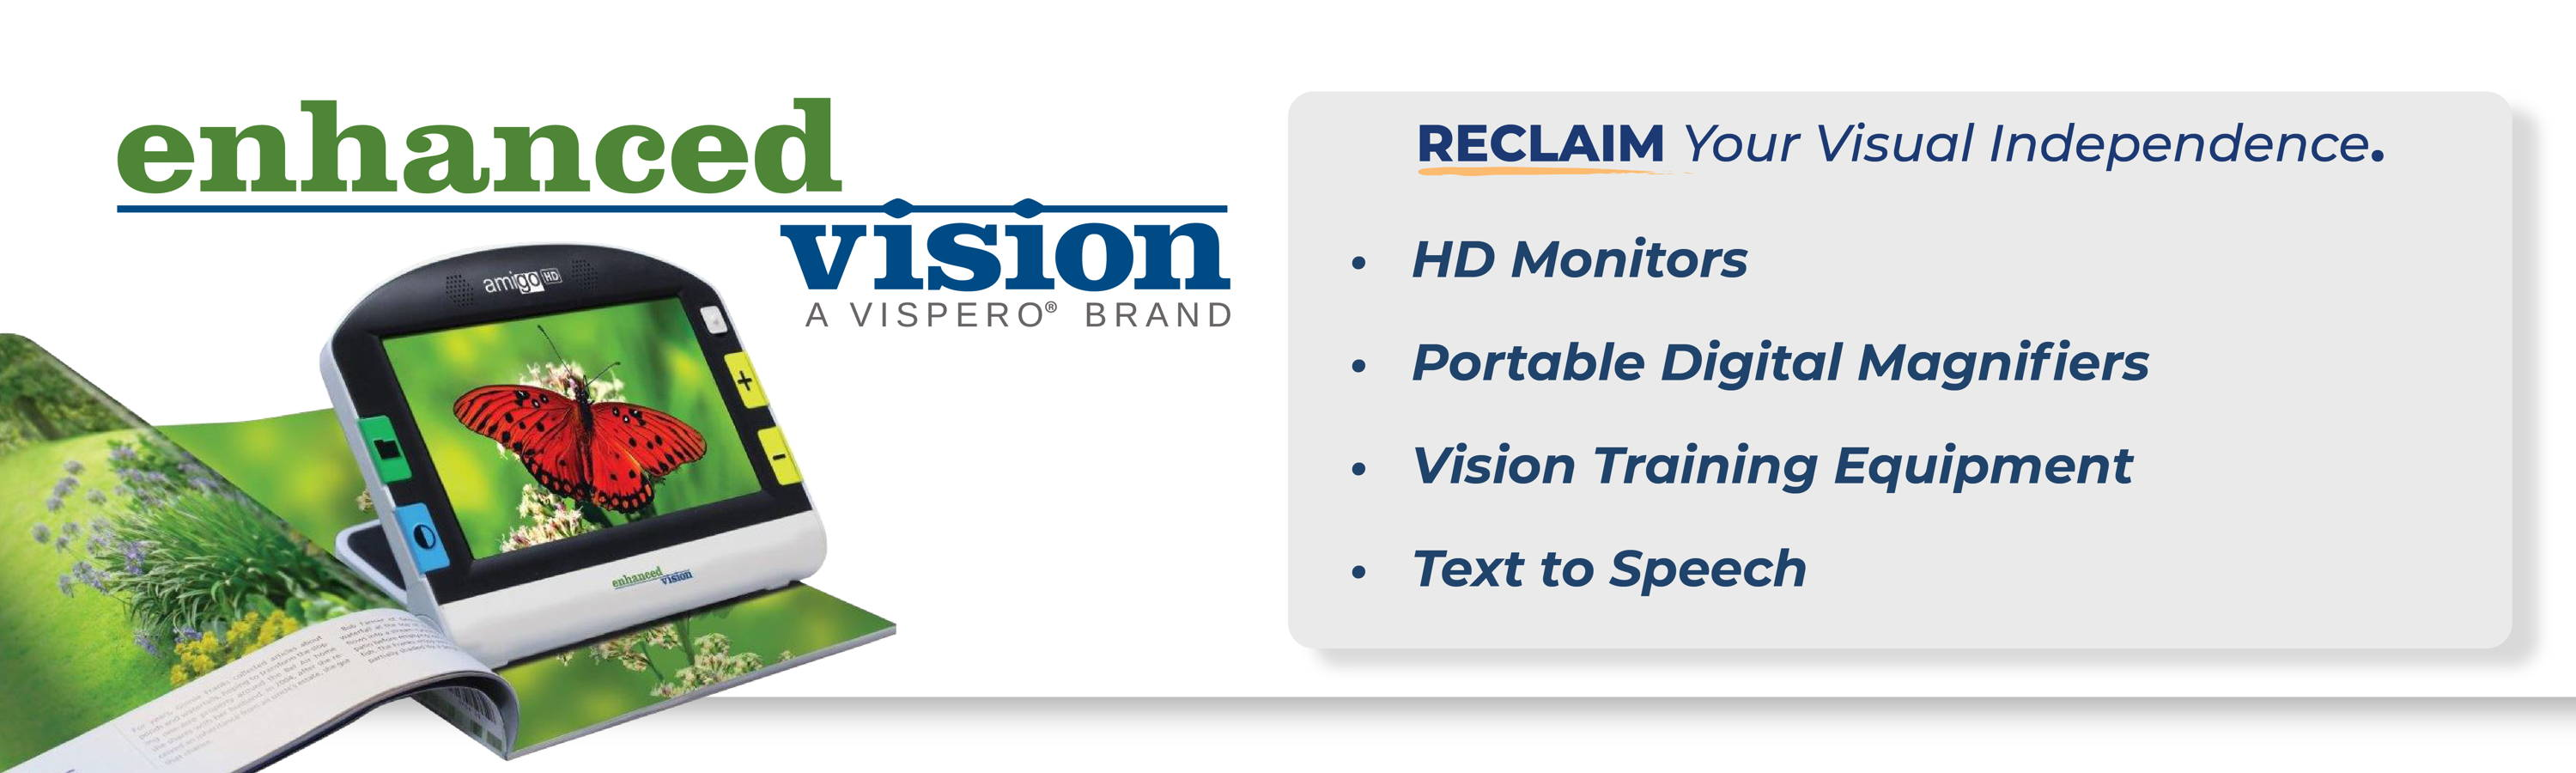 Enhanced Vision Brand Low Vision Solutions